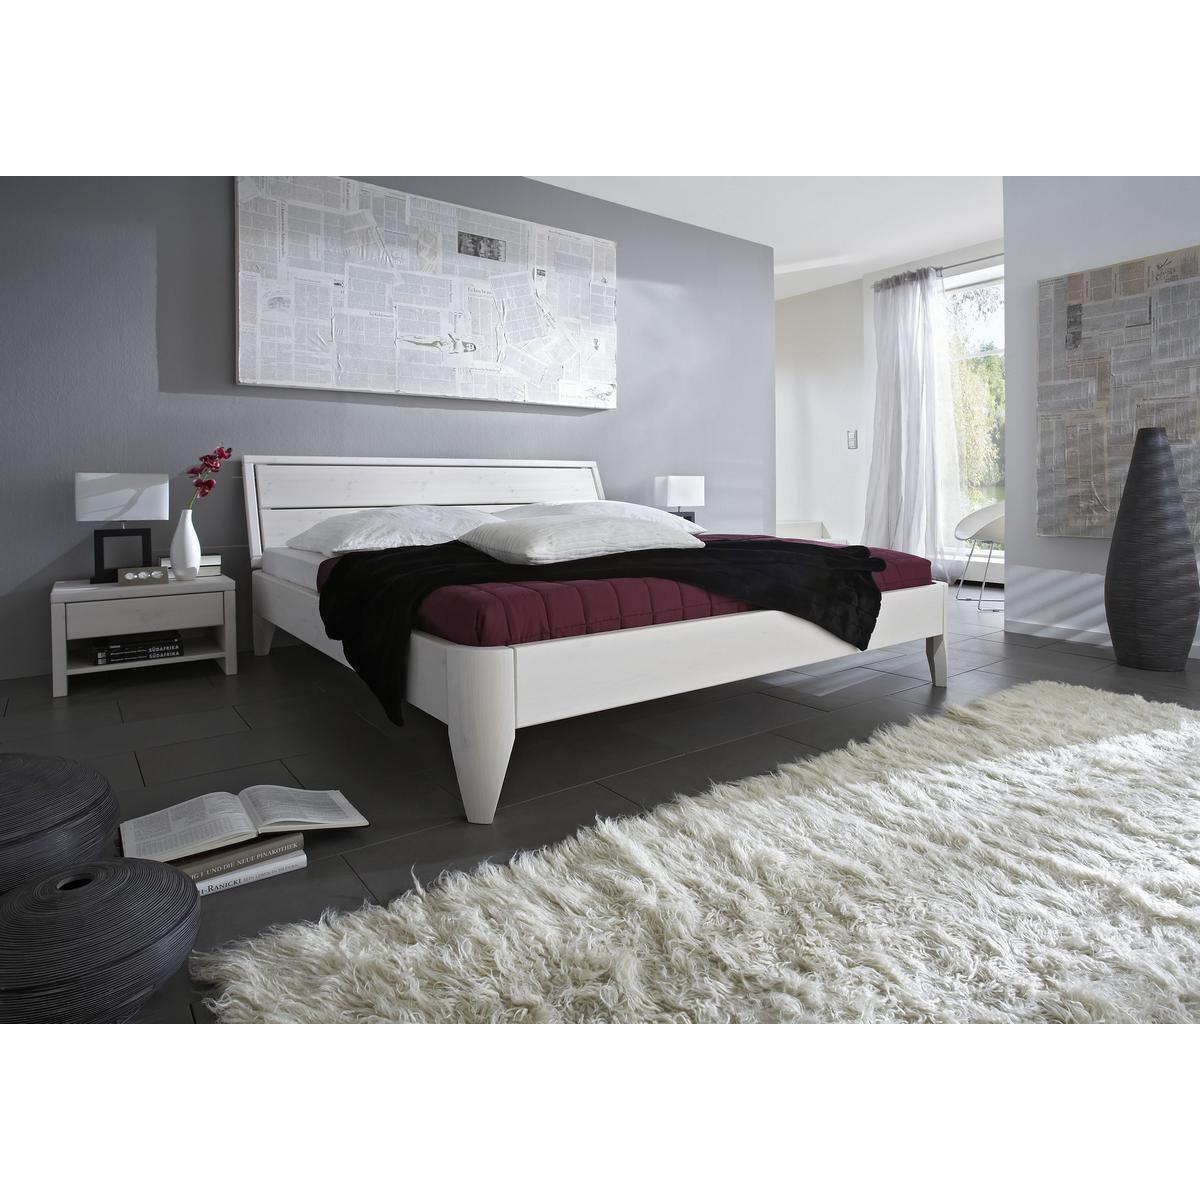 massivholz bett 140x200 easy sleep kiefer massiv wei lackiert 9414 72 0. Black Bedroom Furniture Sets. Home Design Ideas